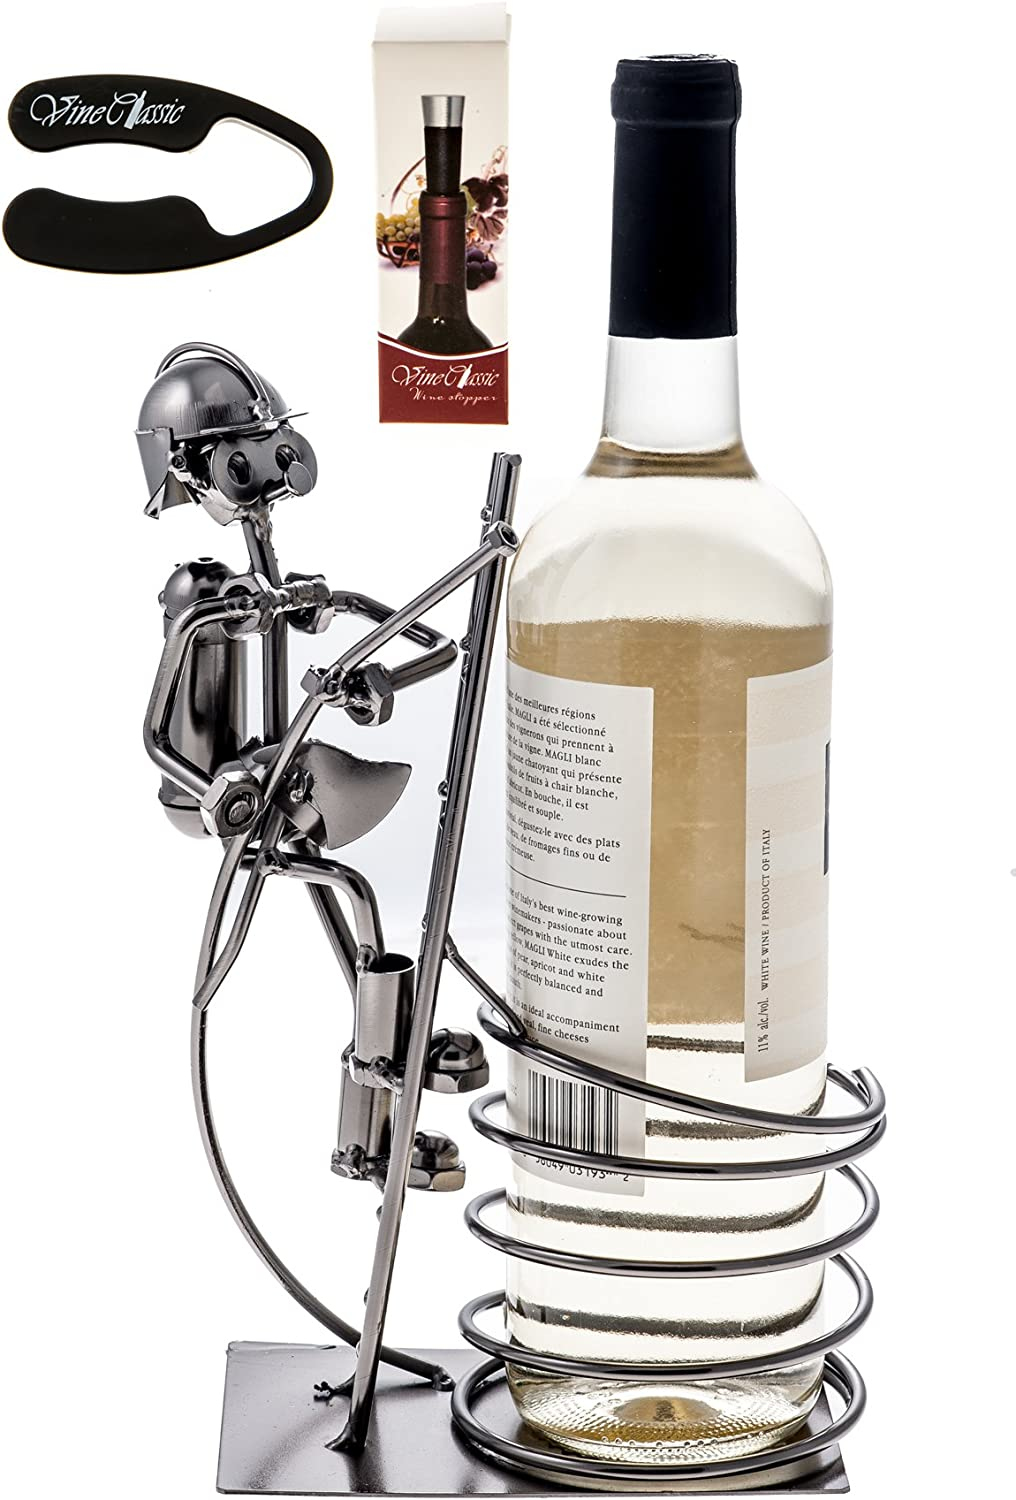 Upscale Innovations Fire Fighter Wine Holder with Quantity limited Bottle a excellence